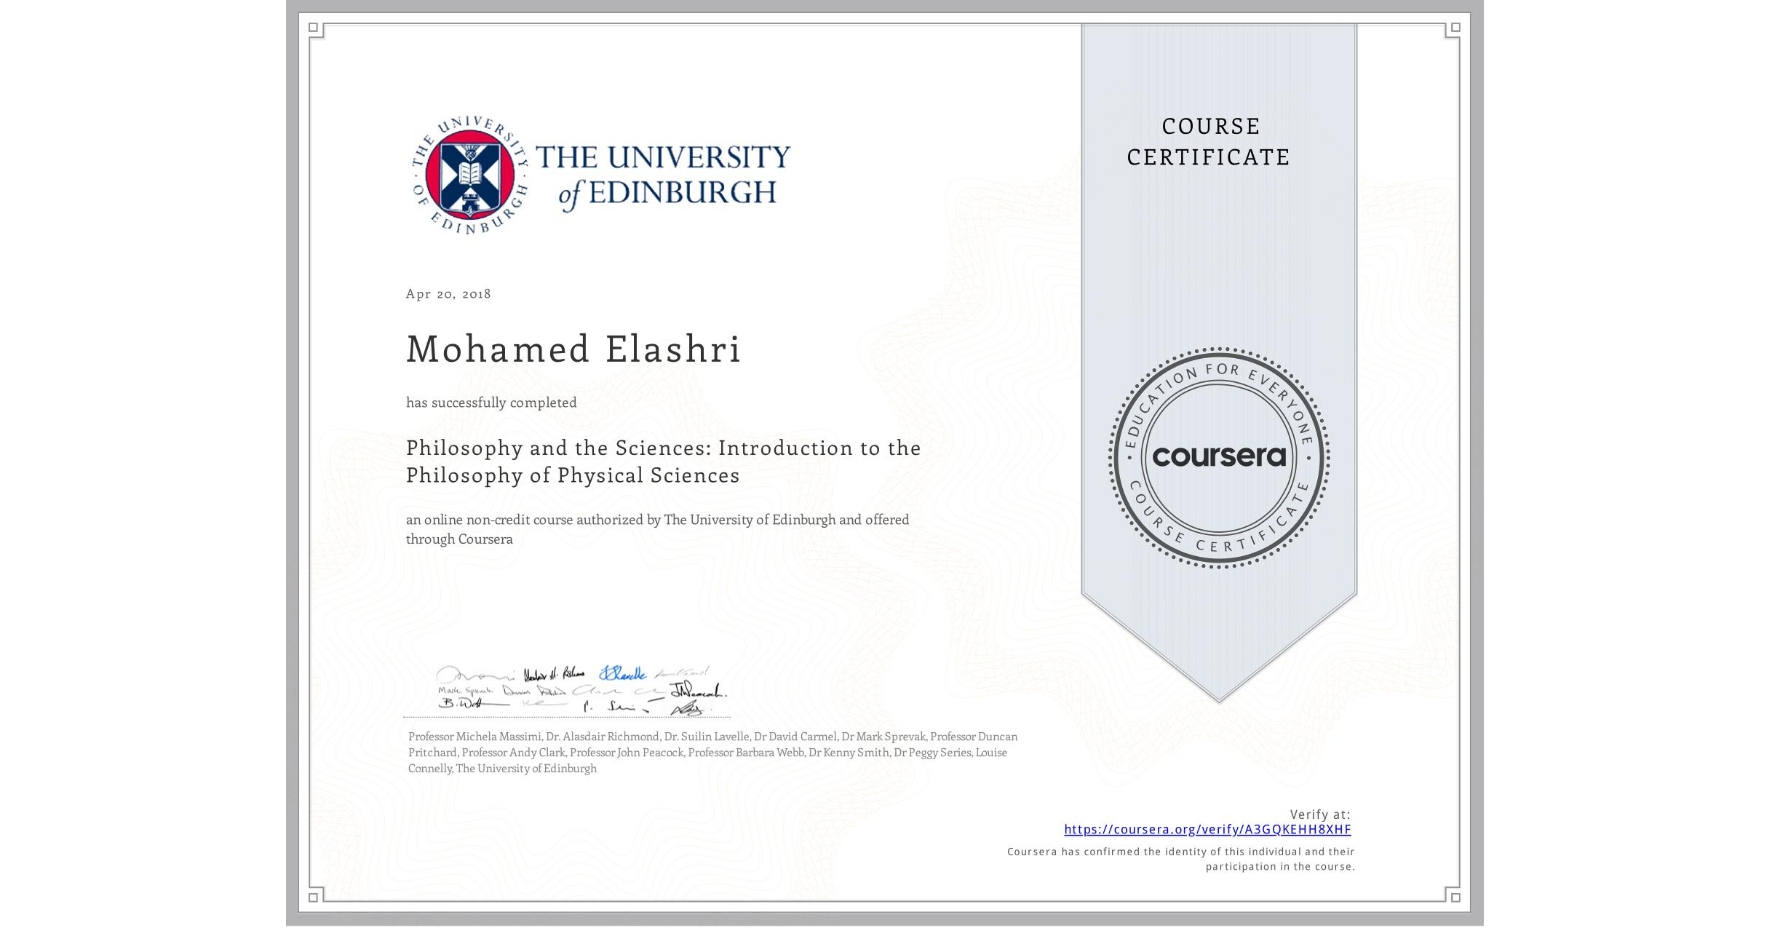 View certificate for Mohamed Elashri, Philosophy and the Sciences: Introduction to the Philosophy of Physical Sciences, an online non-credit course authorized by The University of Edinburgh and offered through Coursera